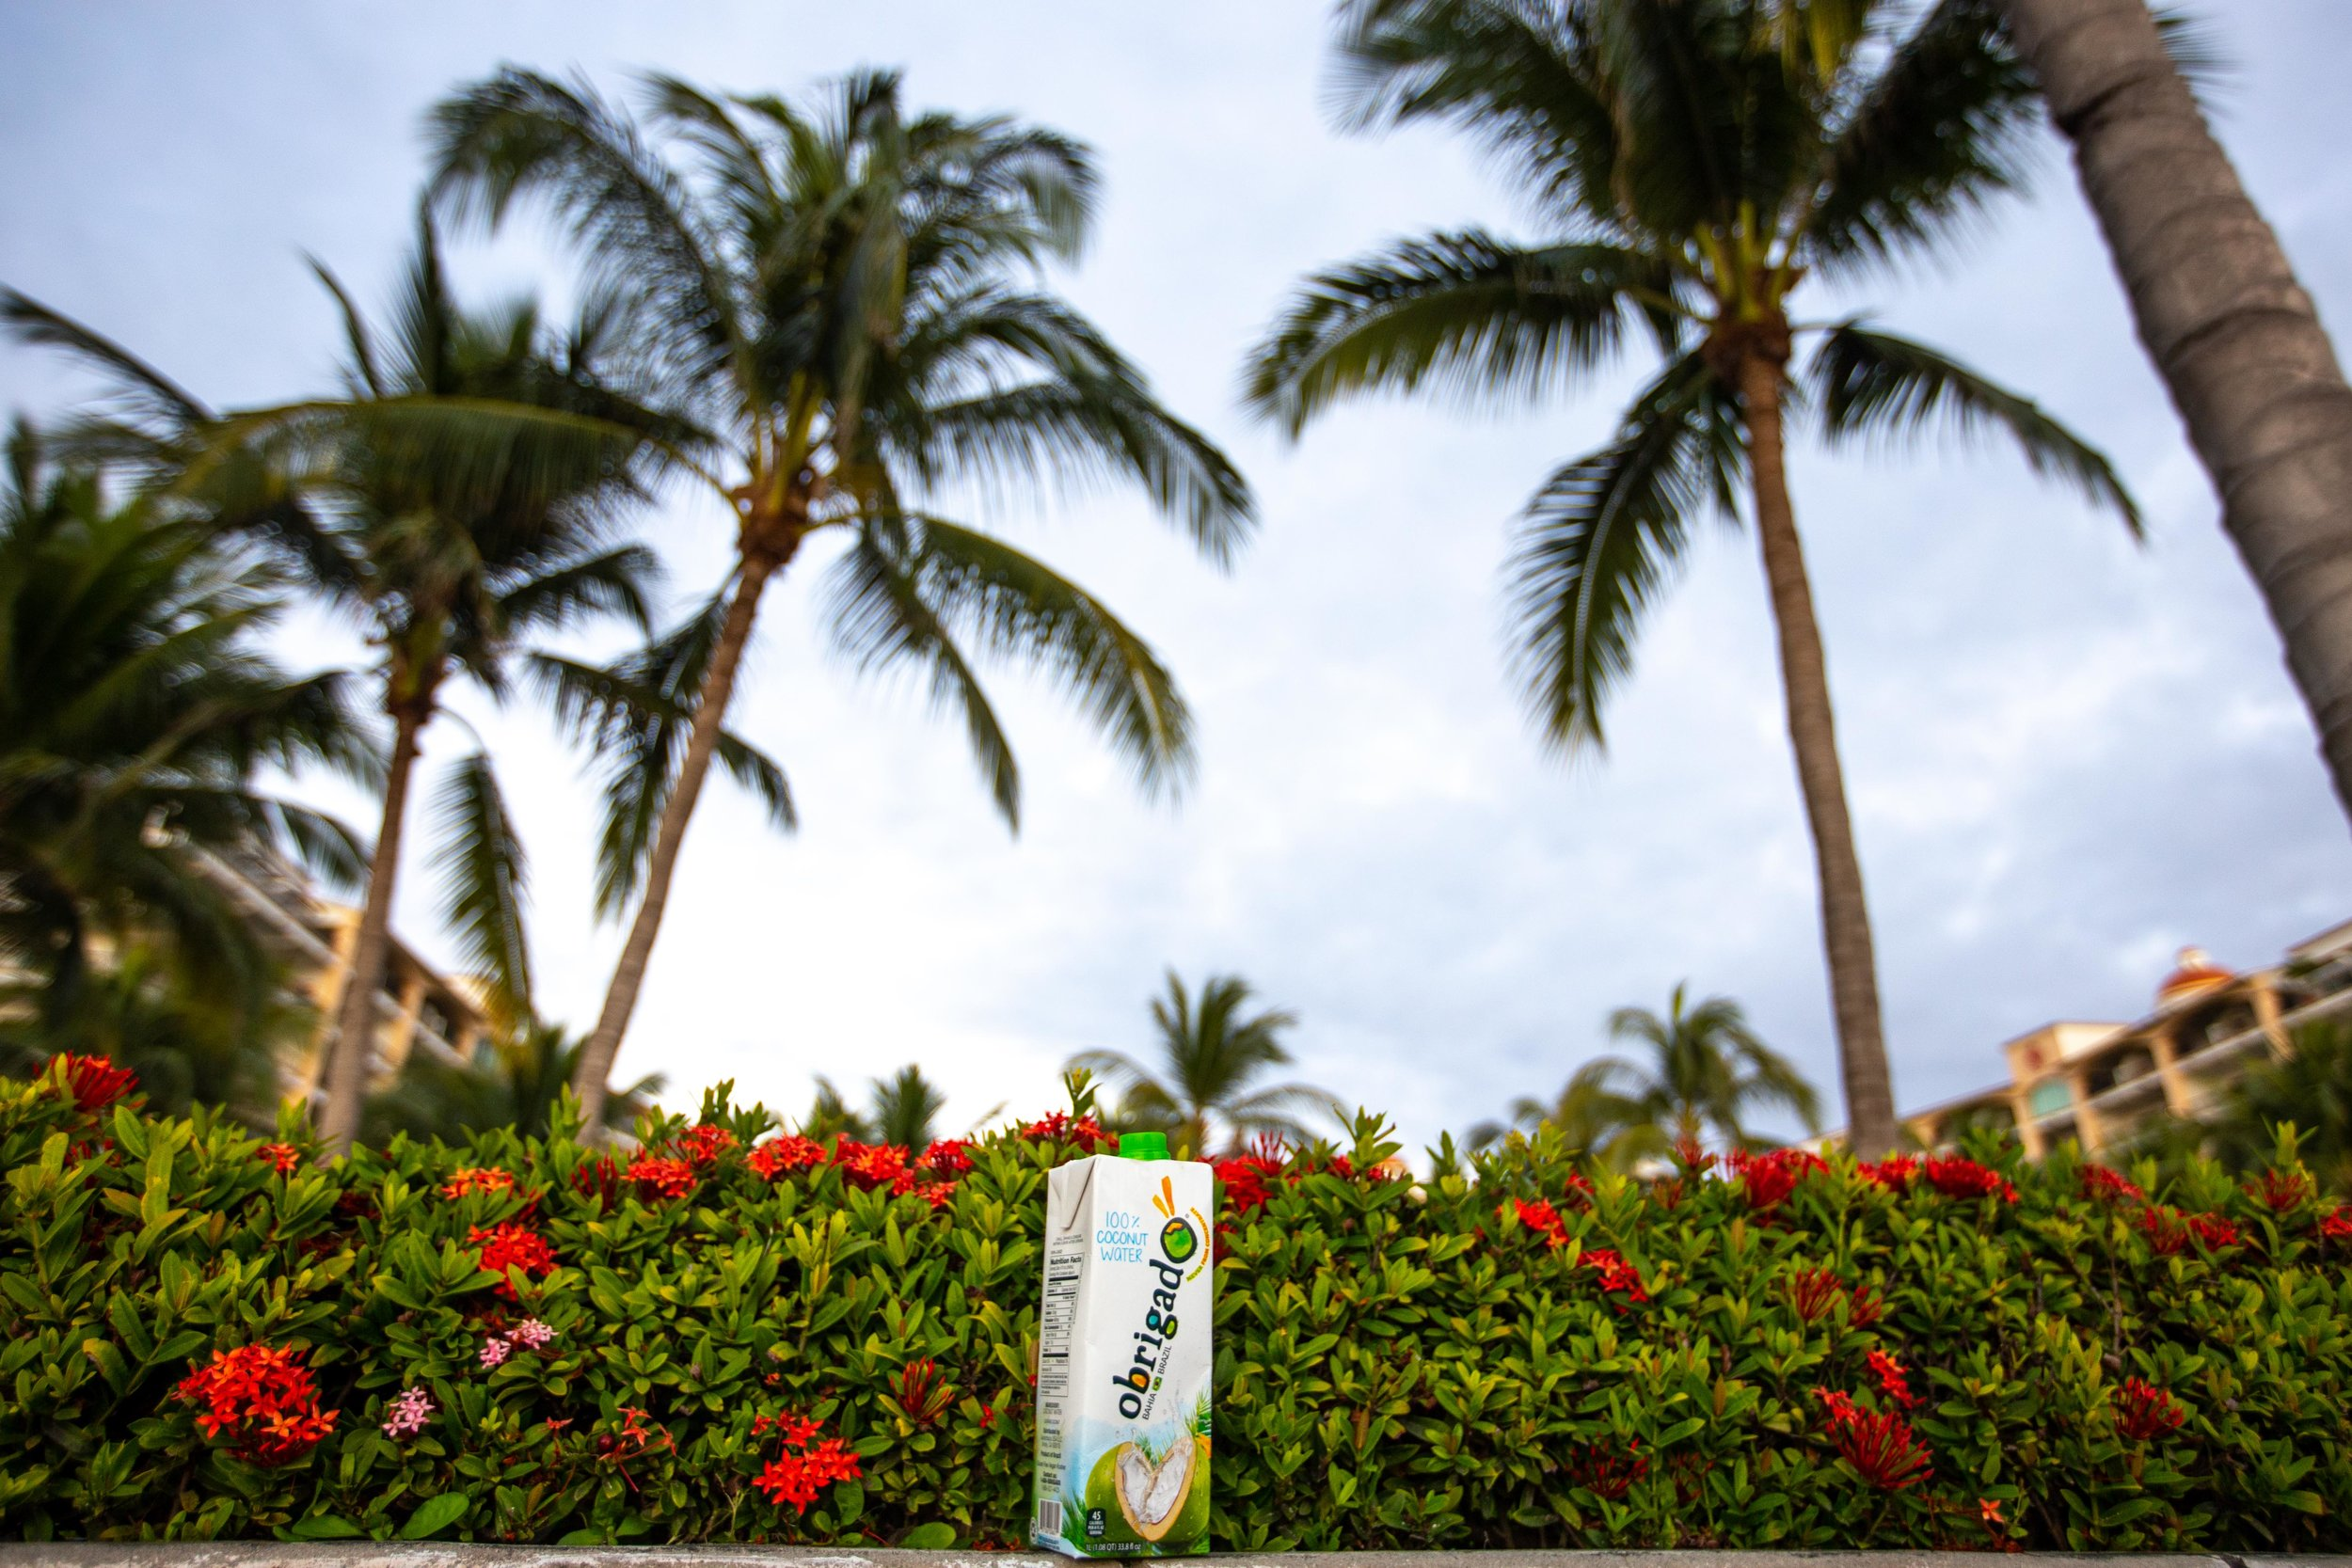 In partnership with Obrigado Coconut Water. All views and opinions are my own.